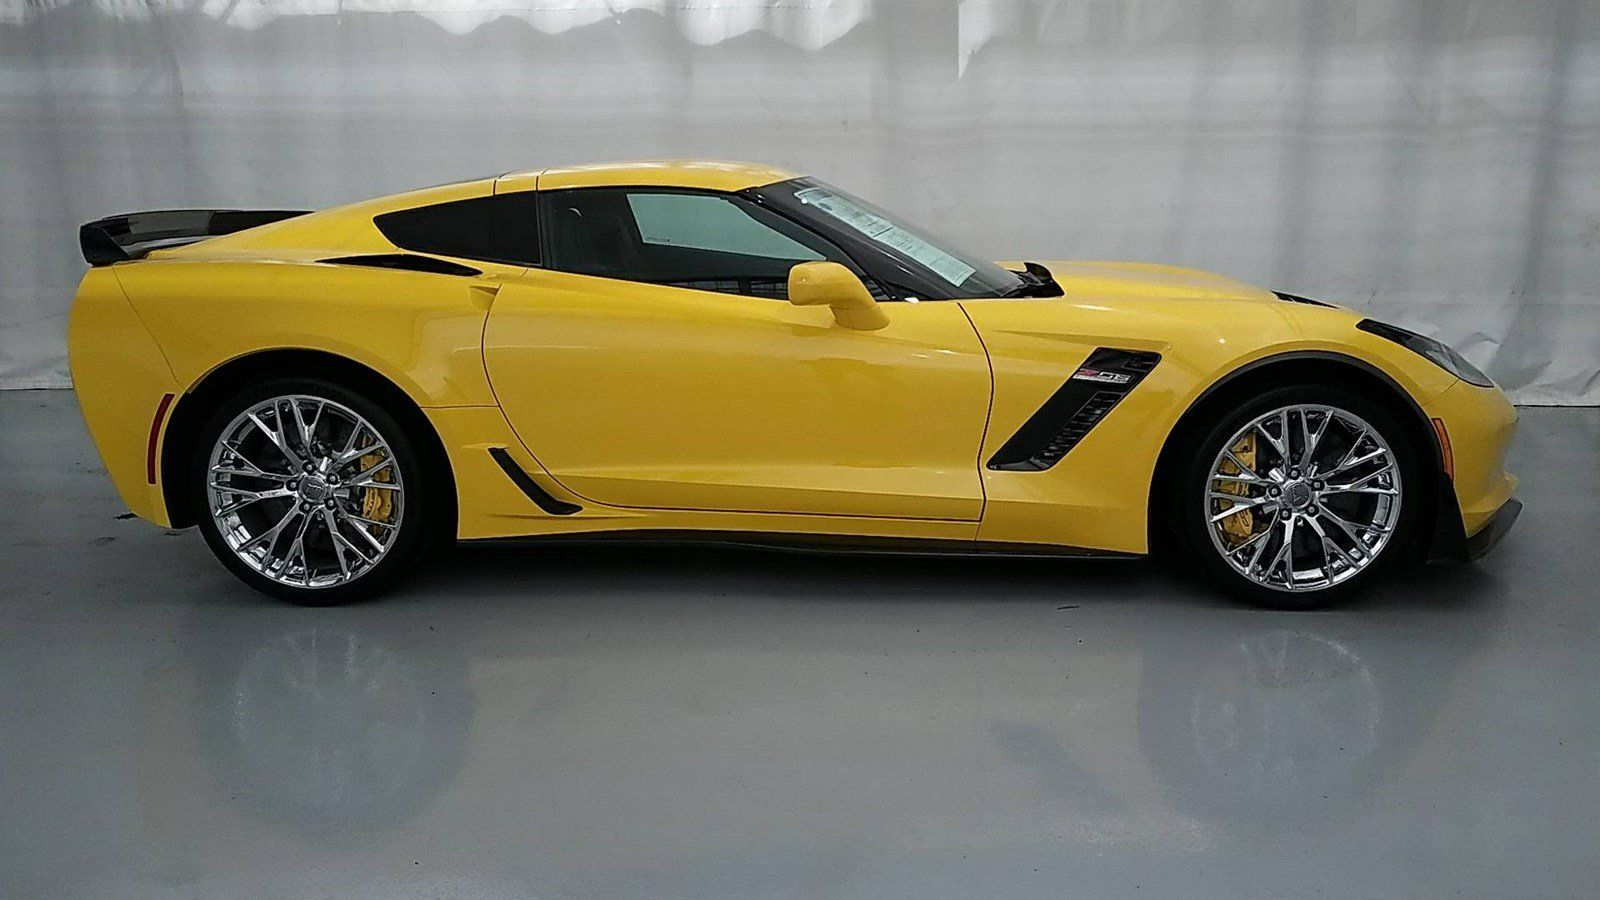 Cars For Sale Used 2015 Chevrolet Corvette Z06 Coupe For Sale In Hammond La 70403 Coupe Details 4 Chevy Corvette Chevrolet Corvette Z06 Chevrolet Corvette